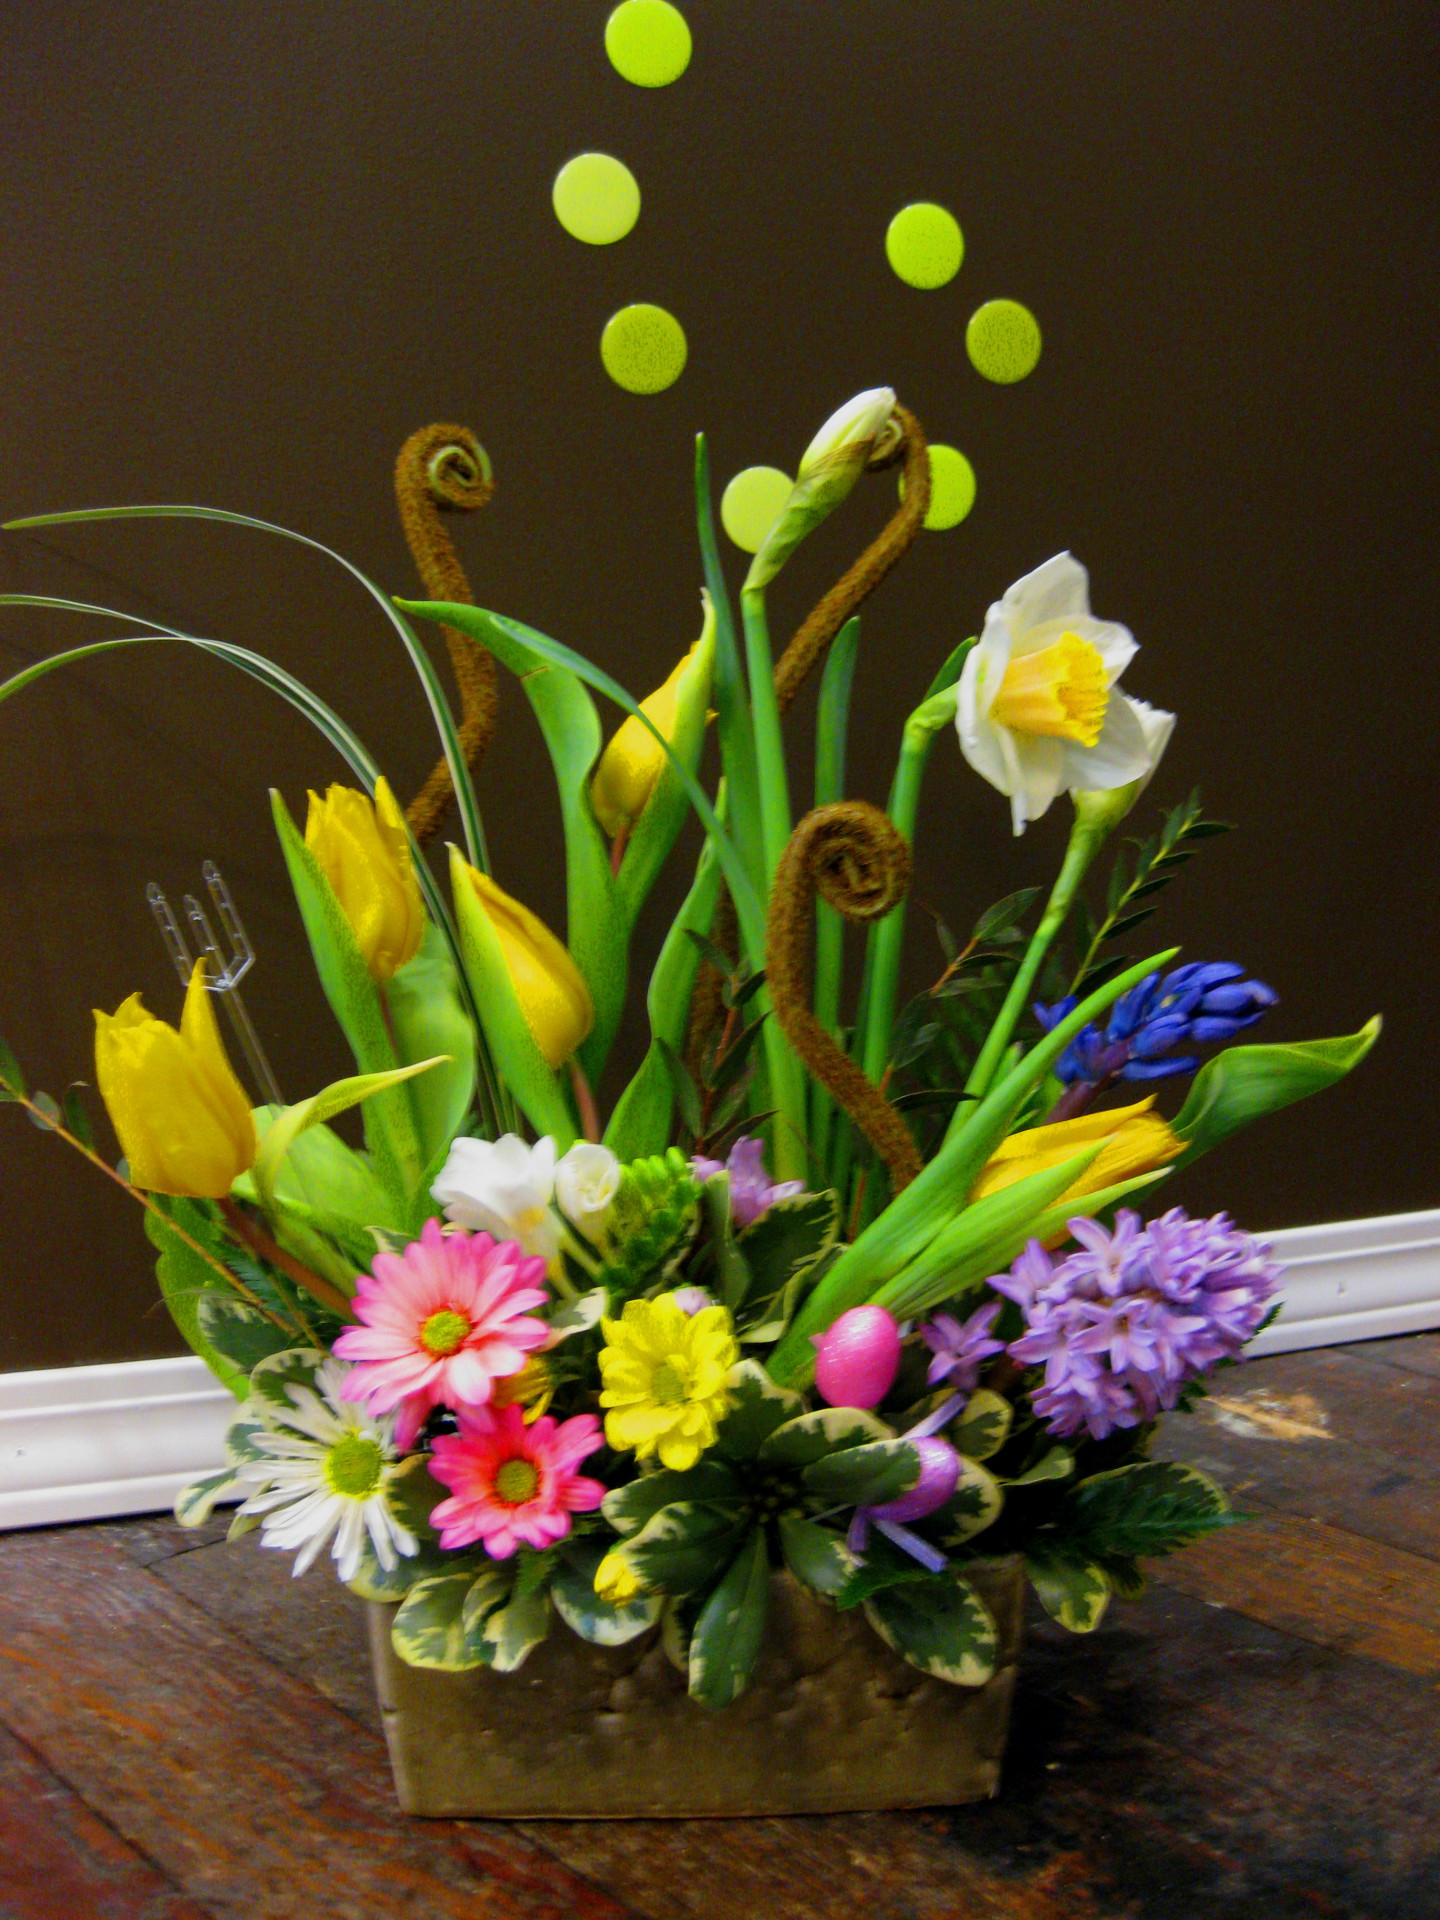 willow, daffodil, tulip, easter, happy, cheerful flowers, bouquet, entertainers, vase, lumsden, regina, craven, regina beach, buena vista